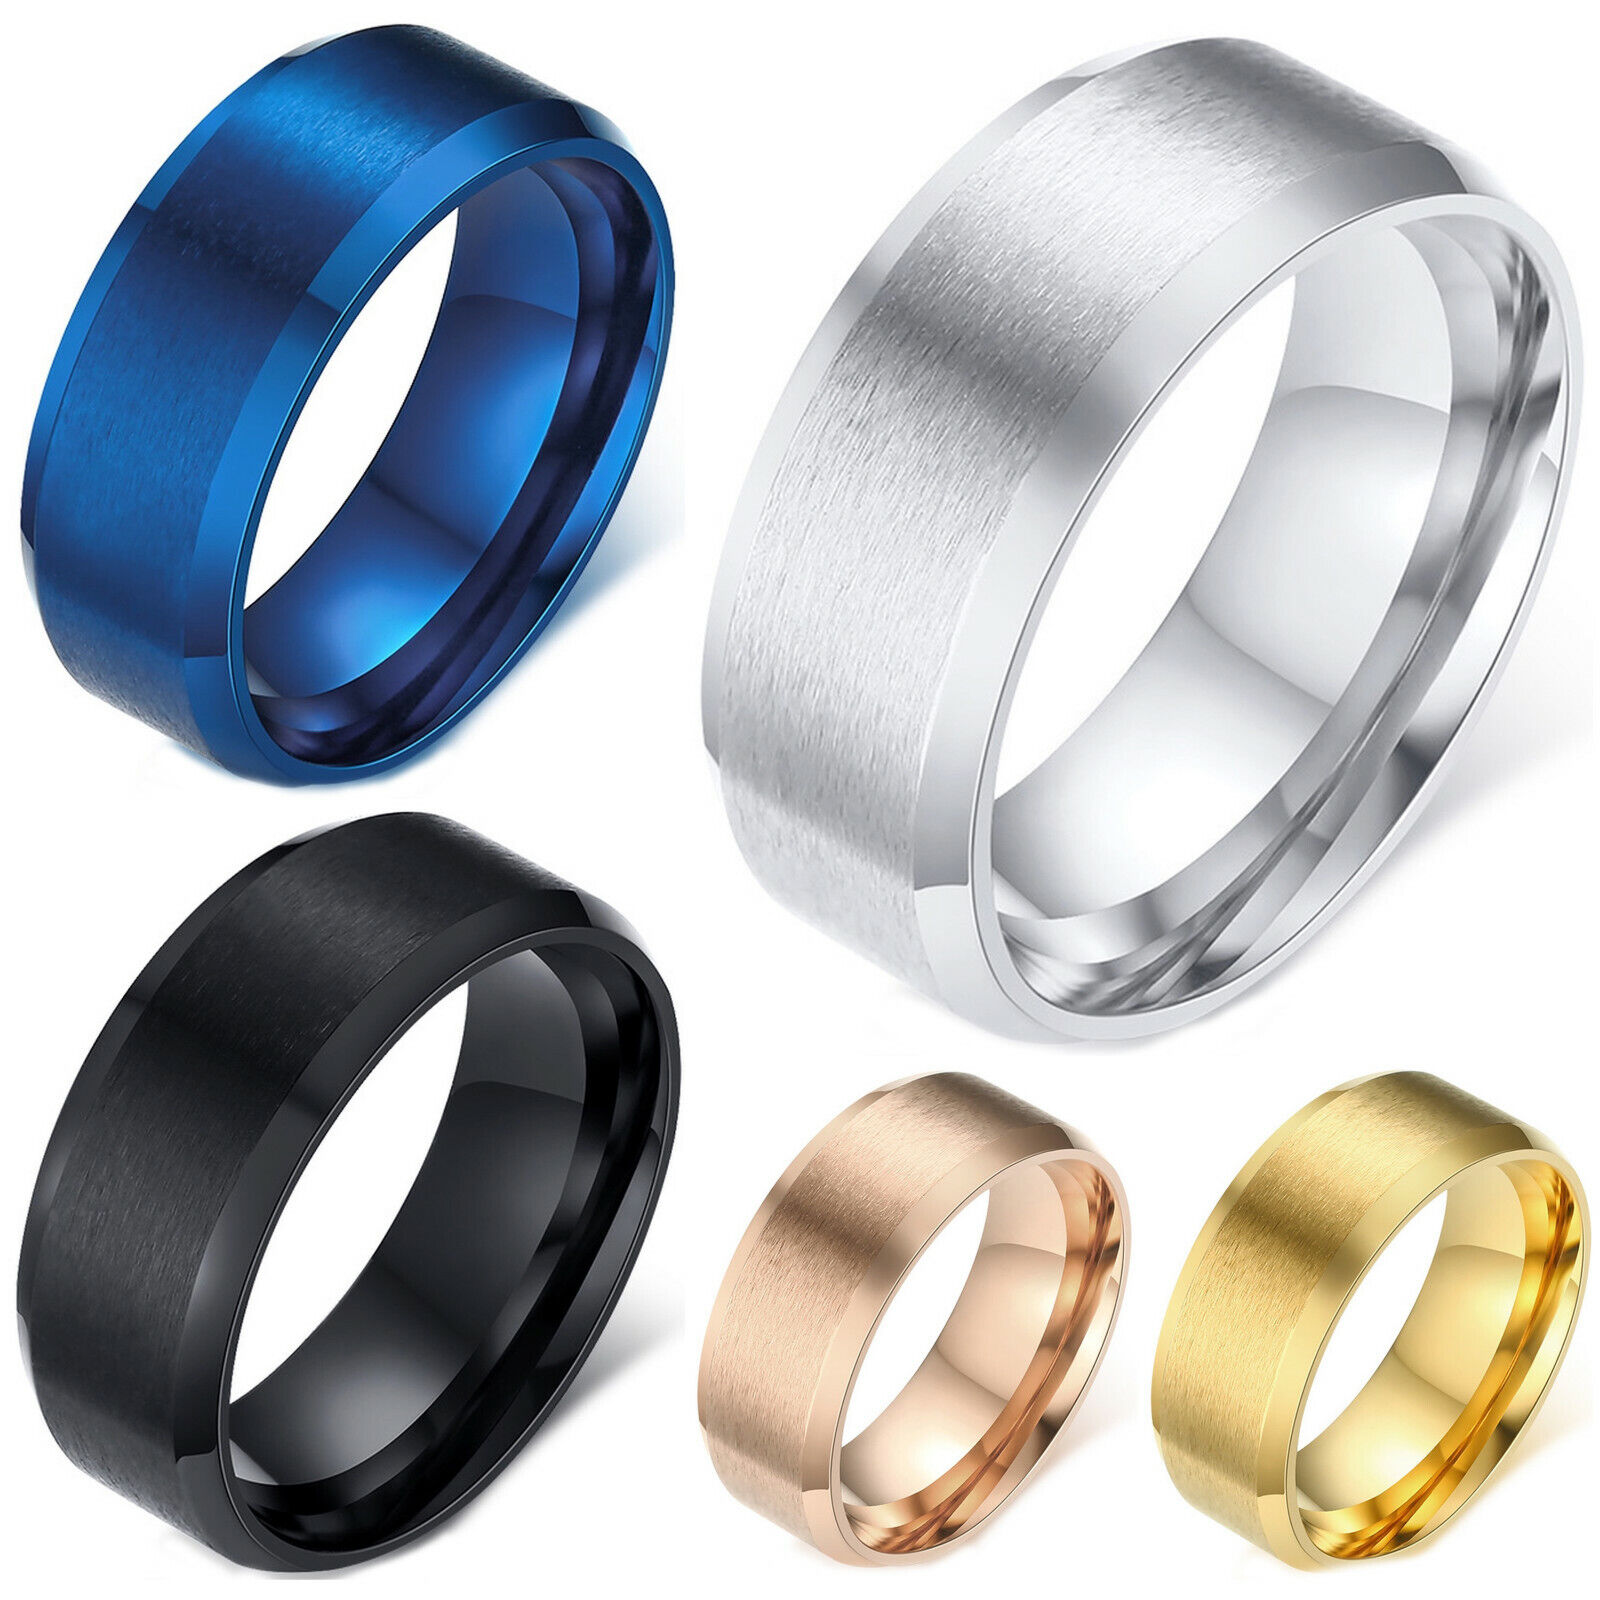 Men's Ring Stainless Steel Beveled Edge Matte Finished Comfort Fit Wedding Band Jewelry & Watches